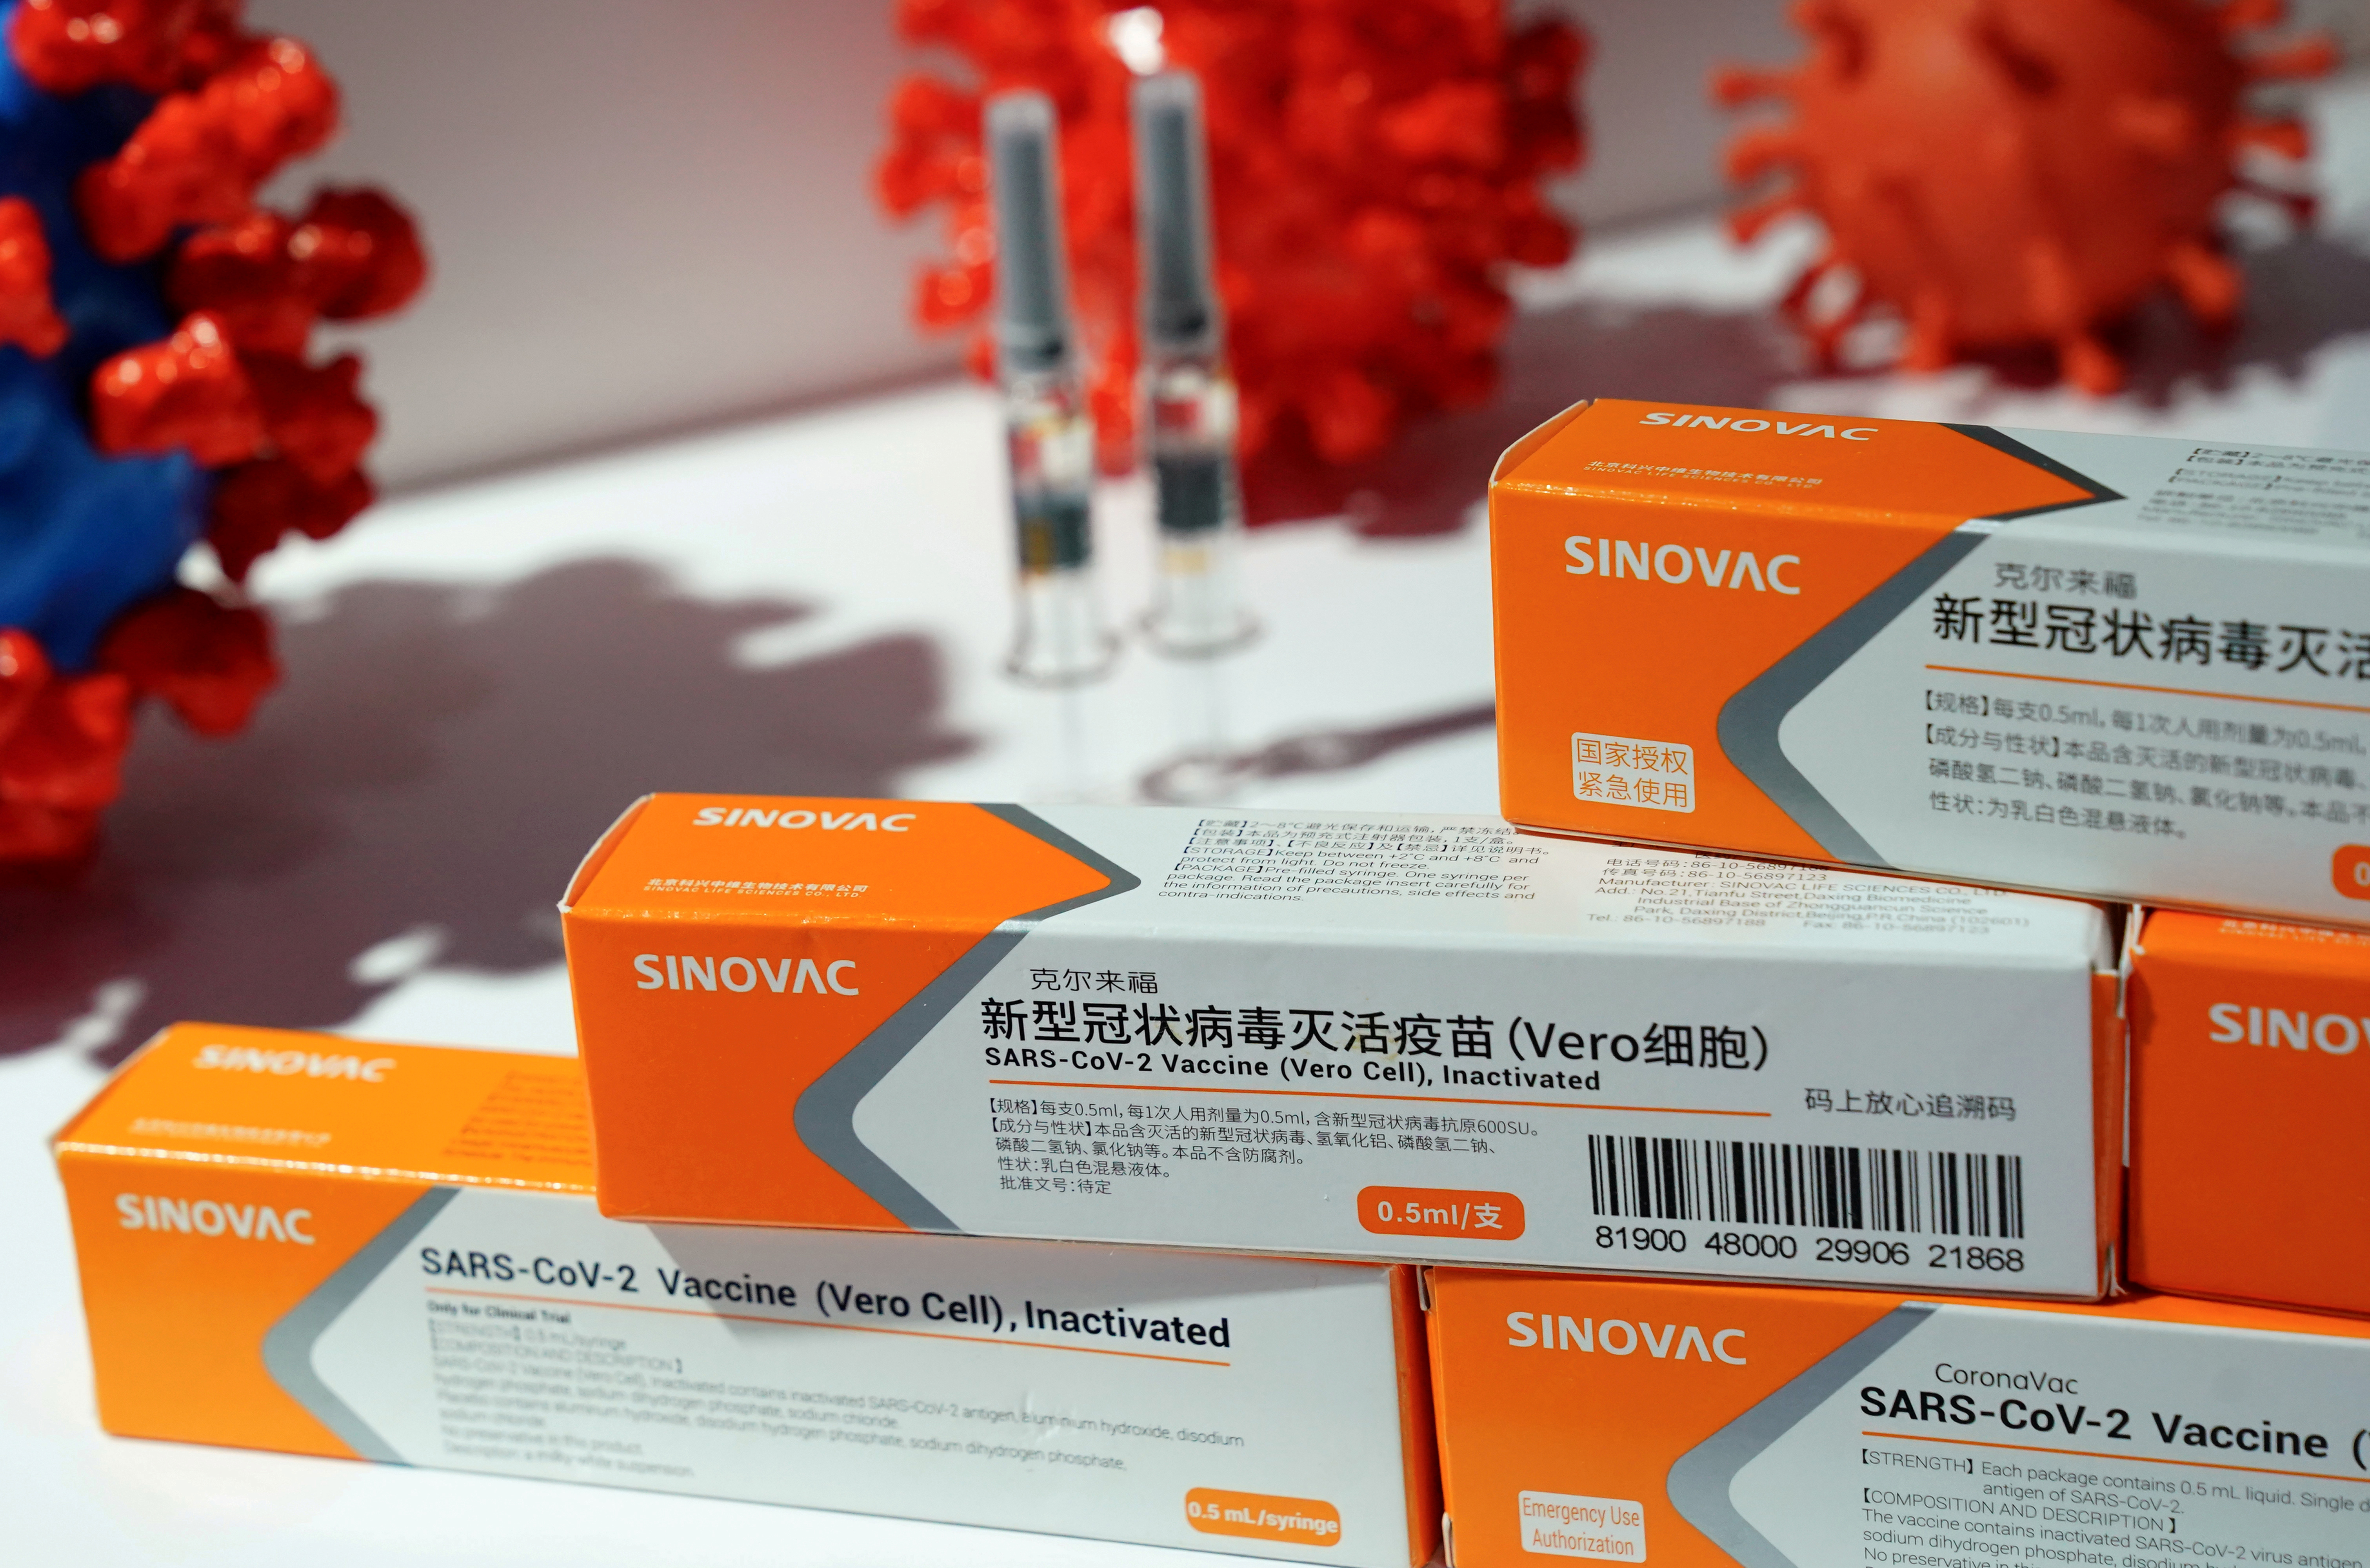 A booth displaying a coronavirus vaccine candidate from Sinovac Biotech Ltd is seen at the 2020 China International Fair for Trade in Services (CIFTIS), following the COVID-19 outbreak, in Beijing, China September 4, 2020. REUTERS/Tingshu Wang